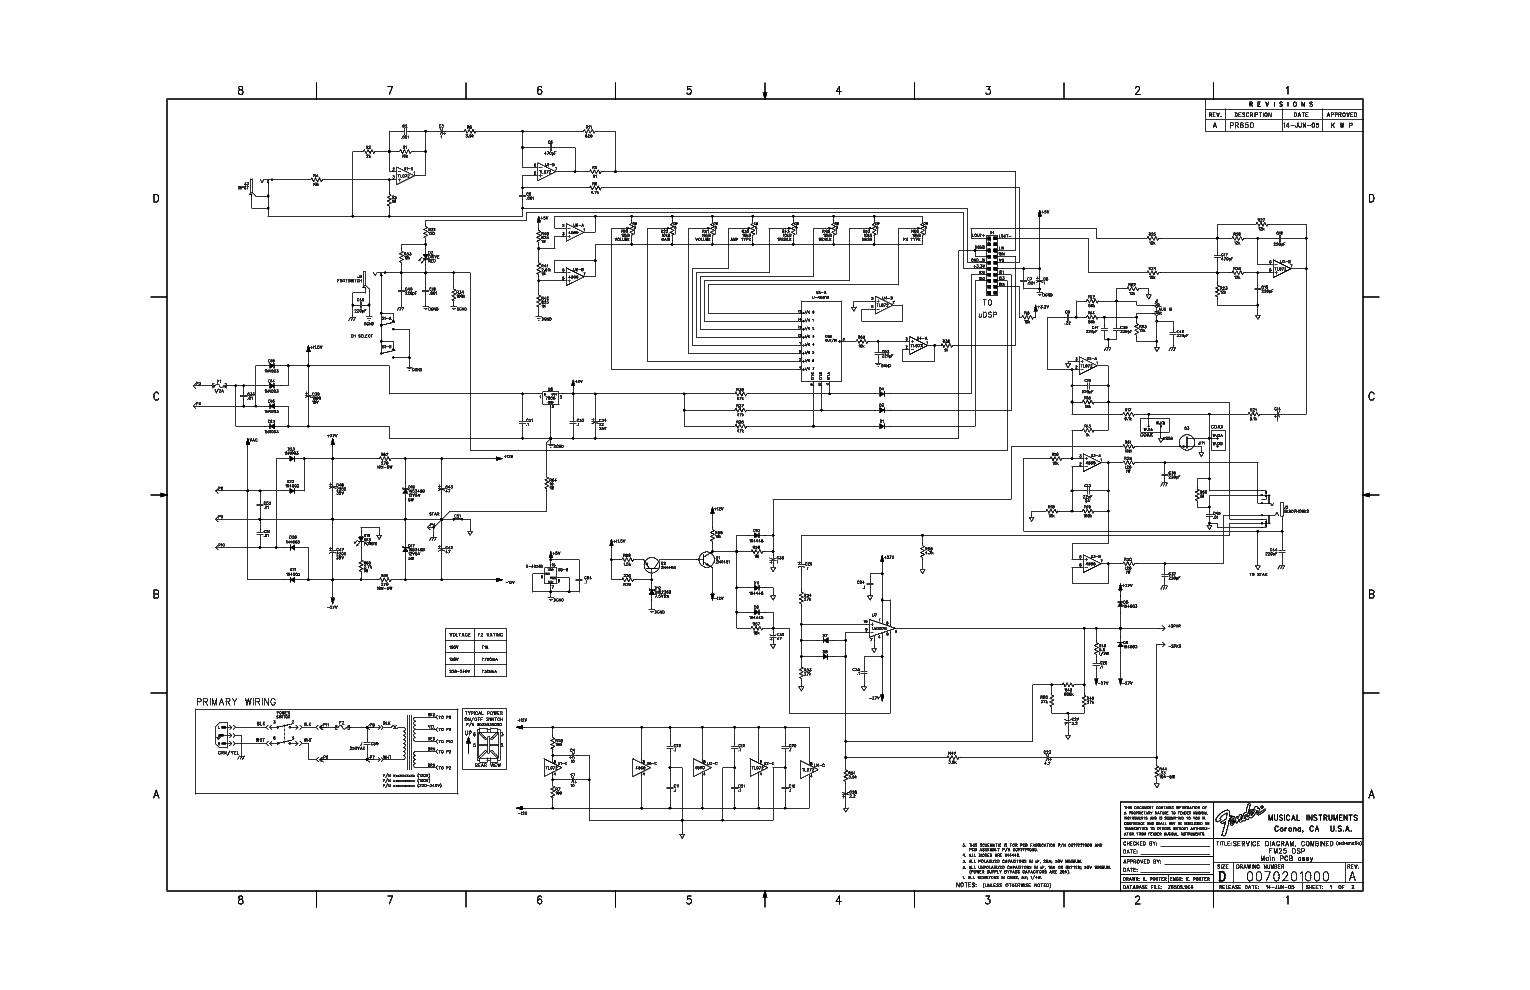 signal stat 900 wiring diagram with horn - wiring diagram blog,Wiring diagram,Wiring Diagram For Signal Stat 700